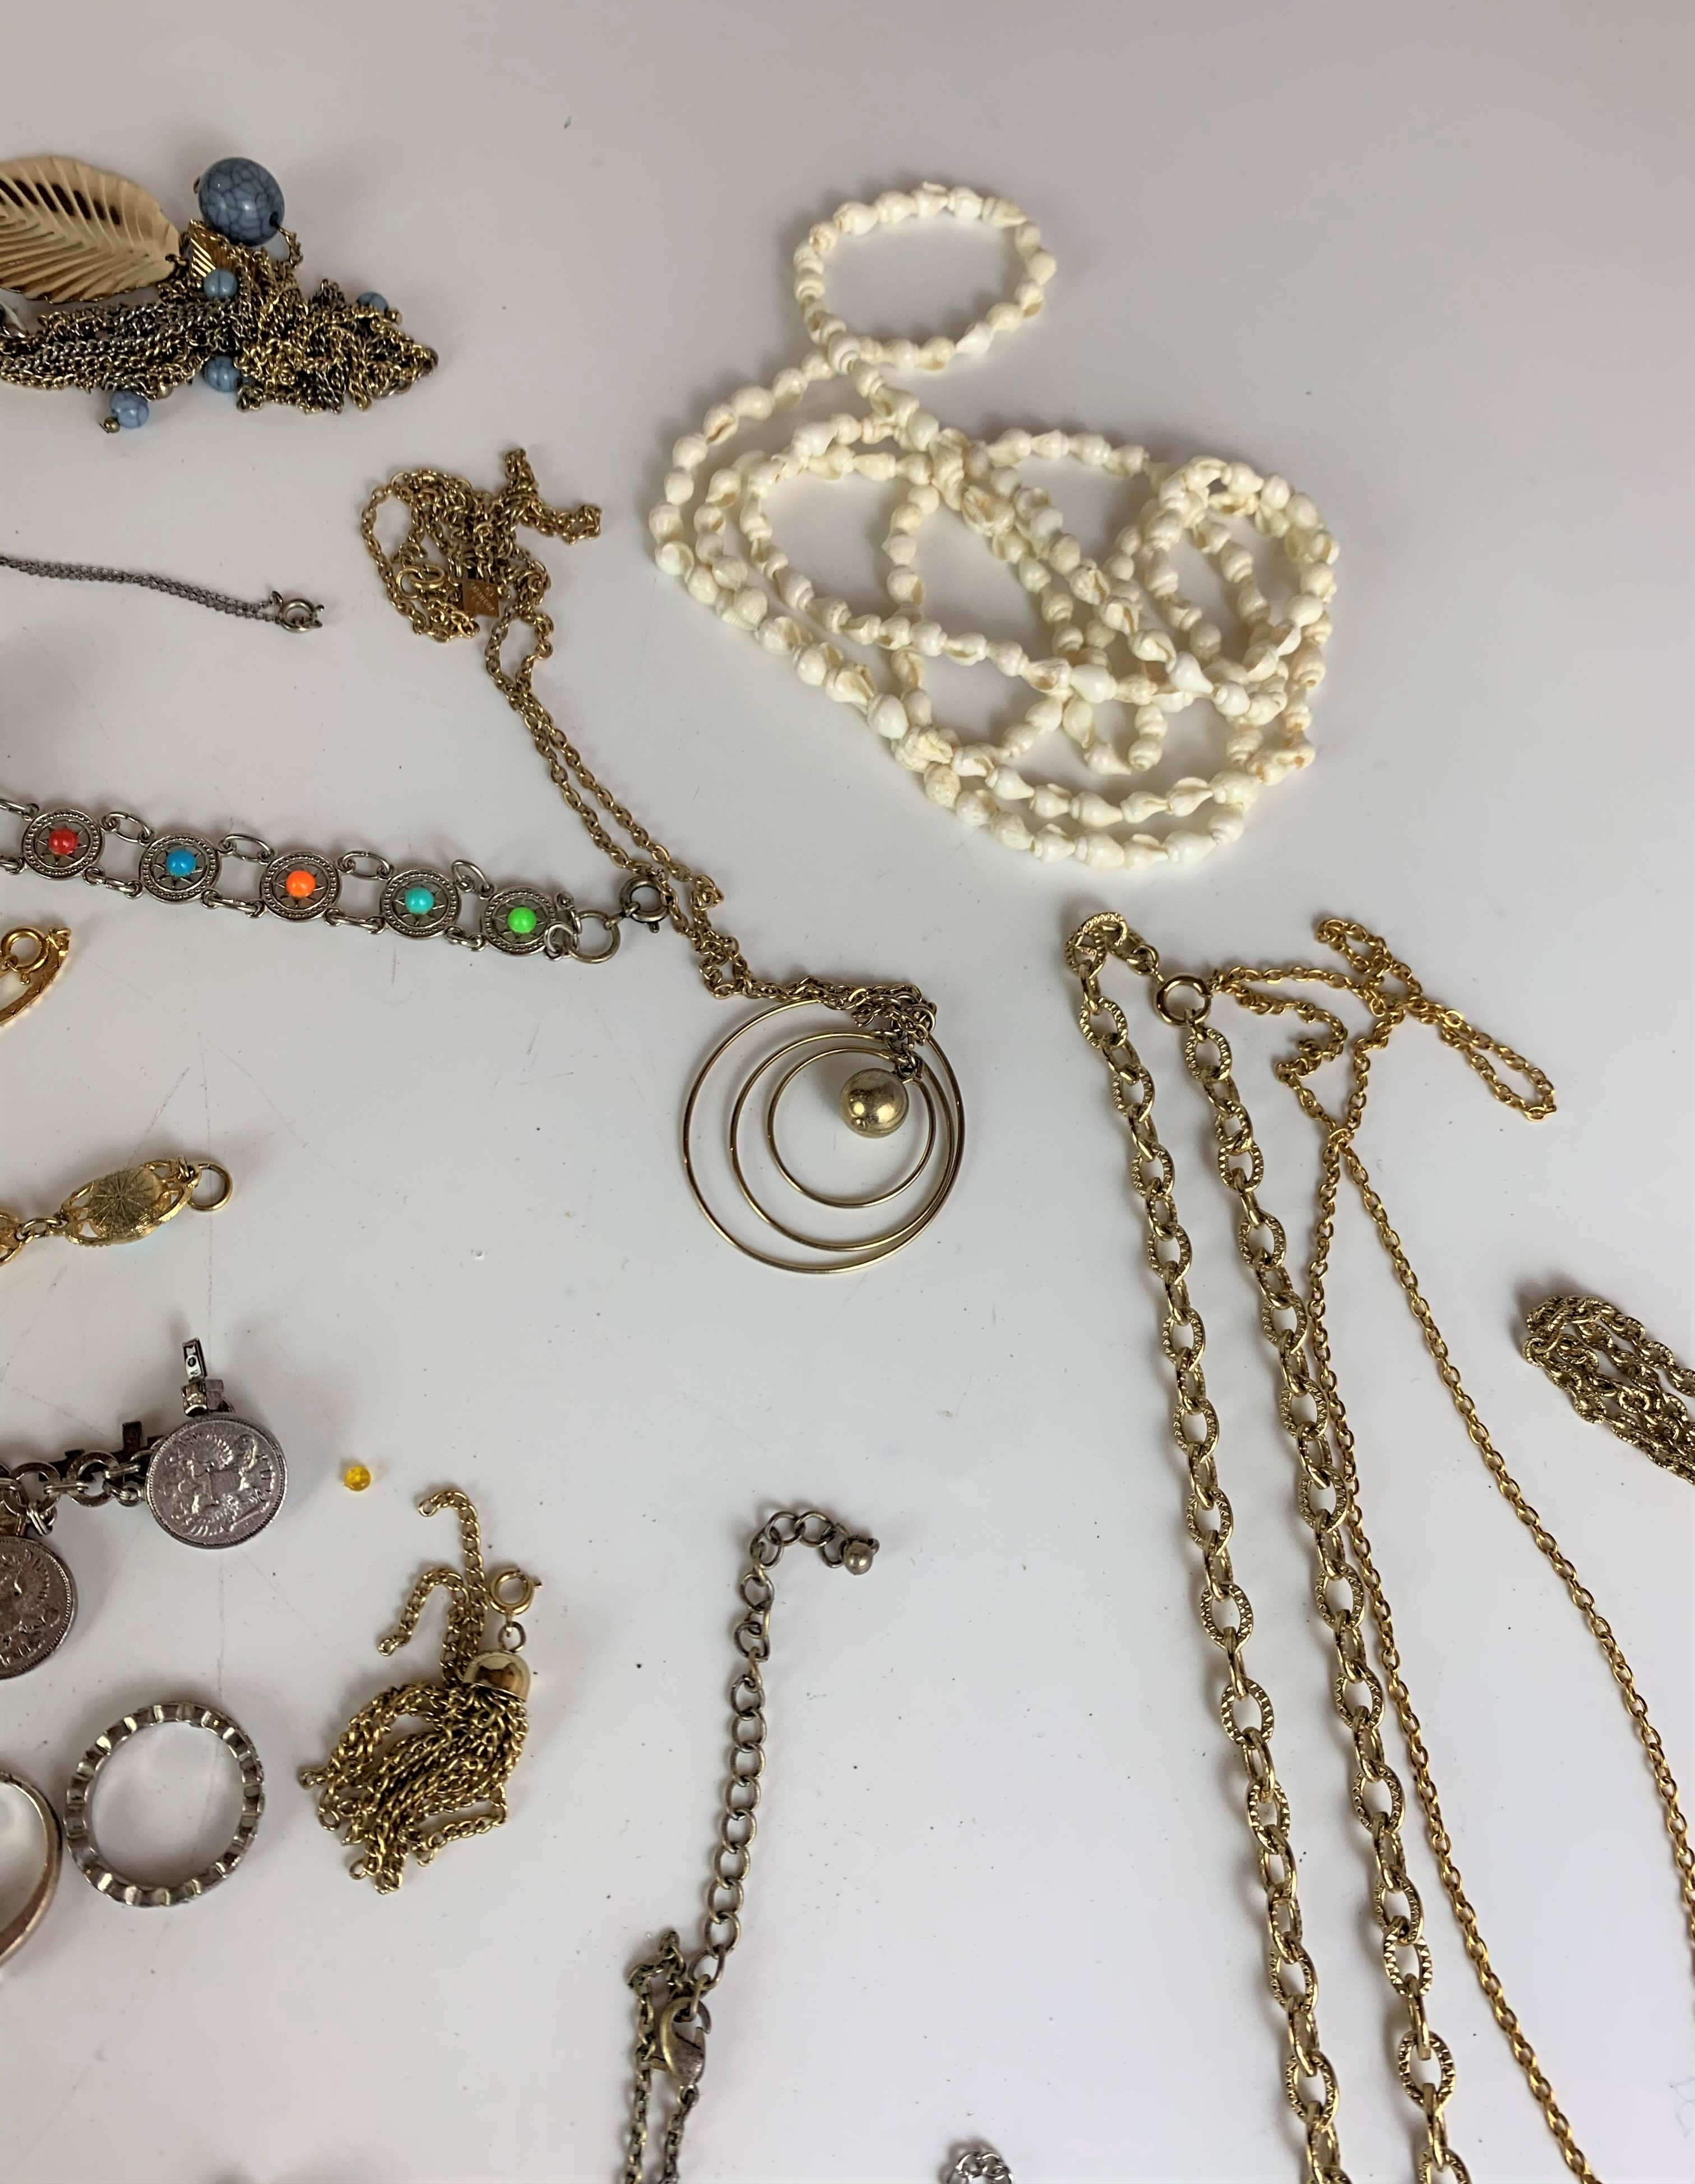 Large bag of assorted dress jewellery including watches, necklaces, bracelets, brooches etc. - Image 9 of 10